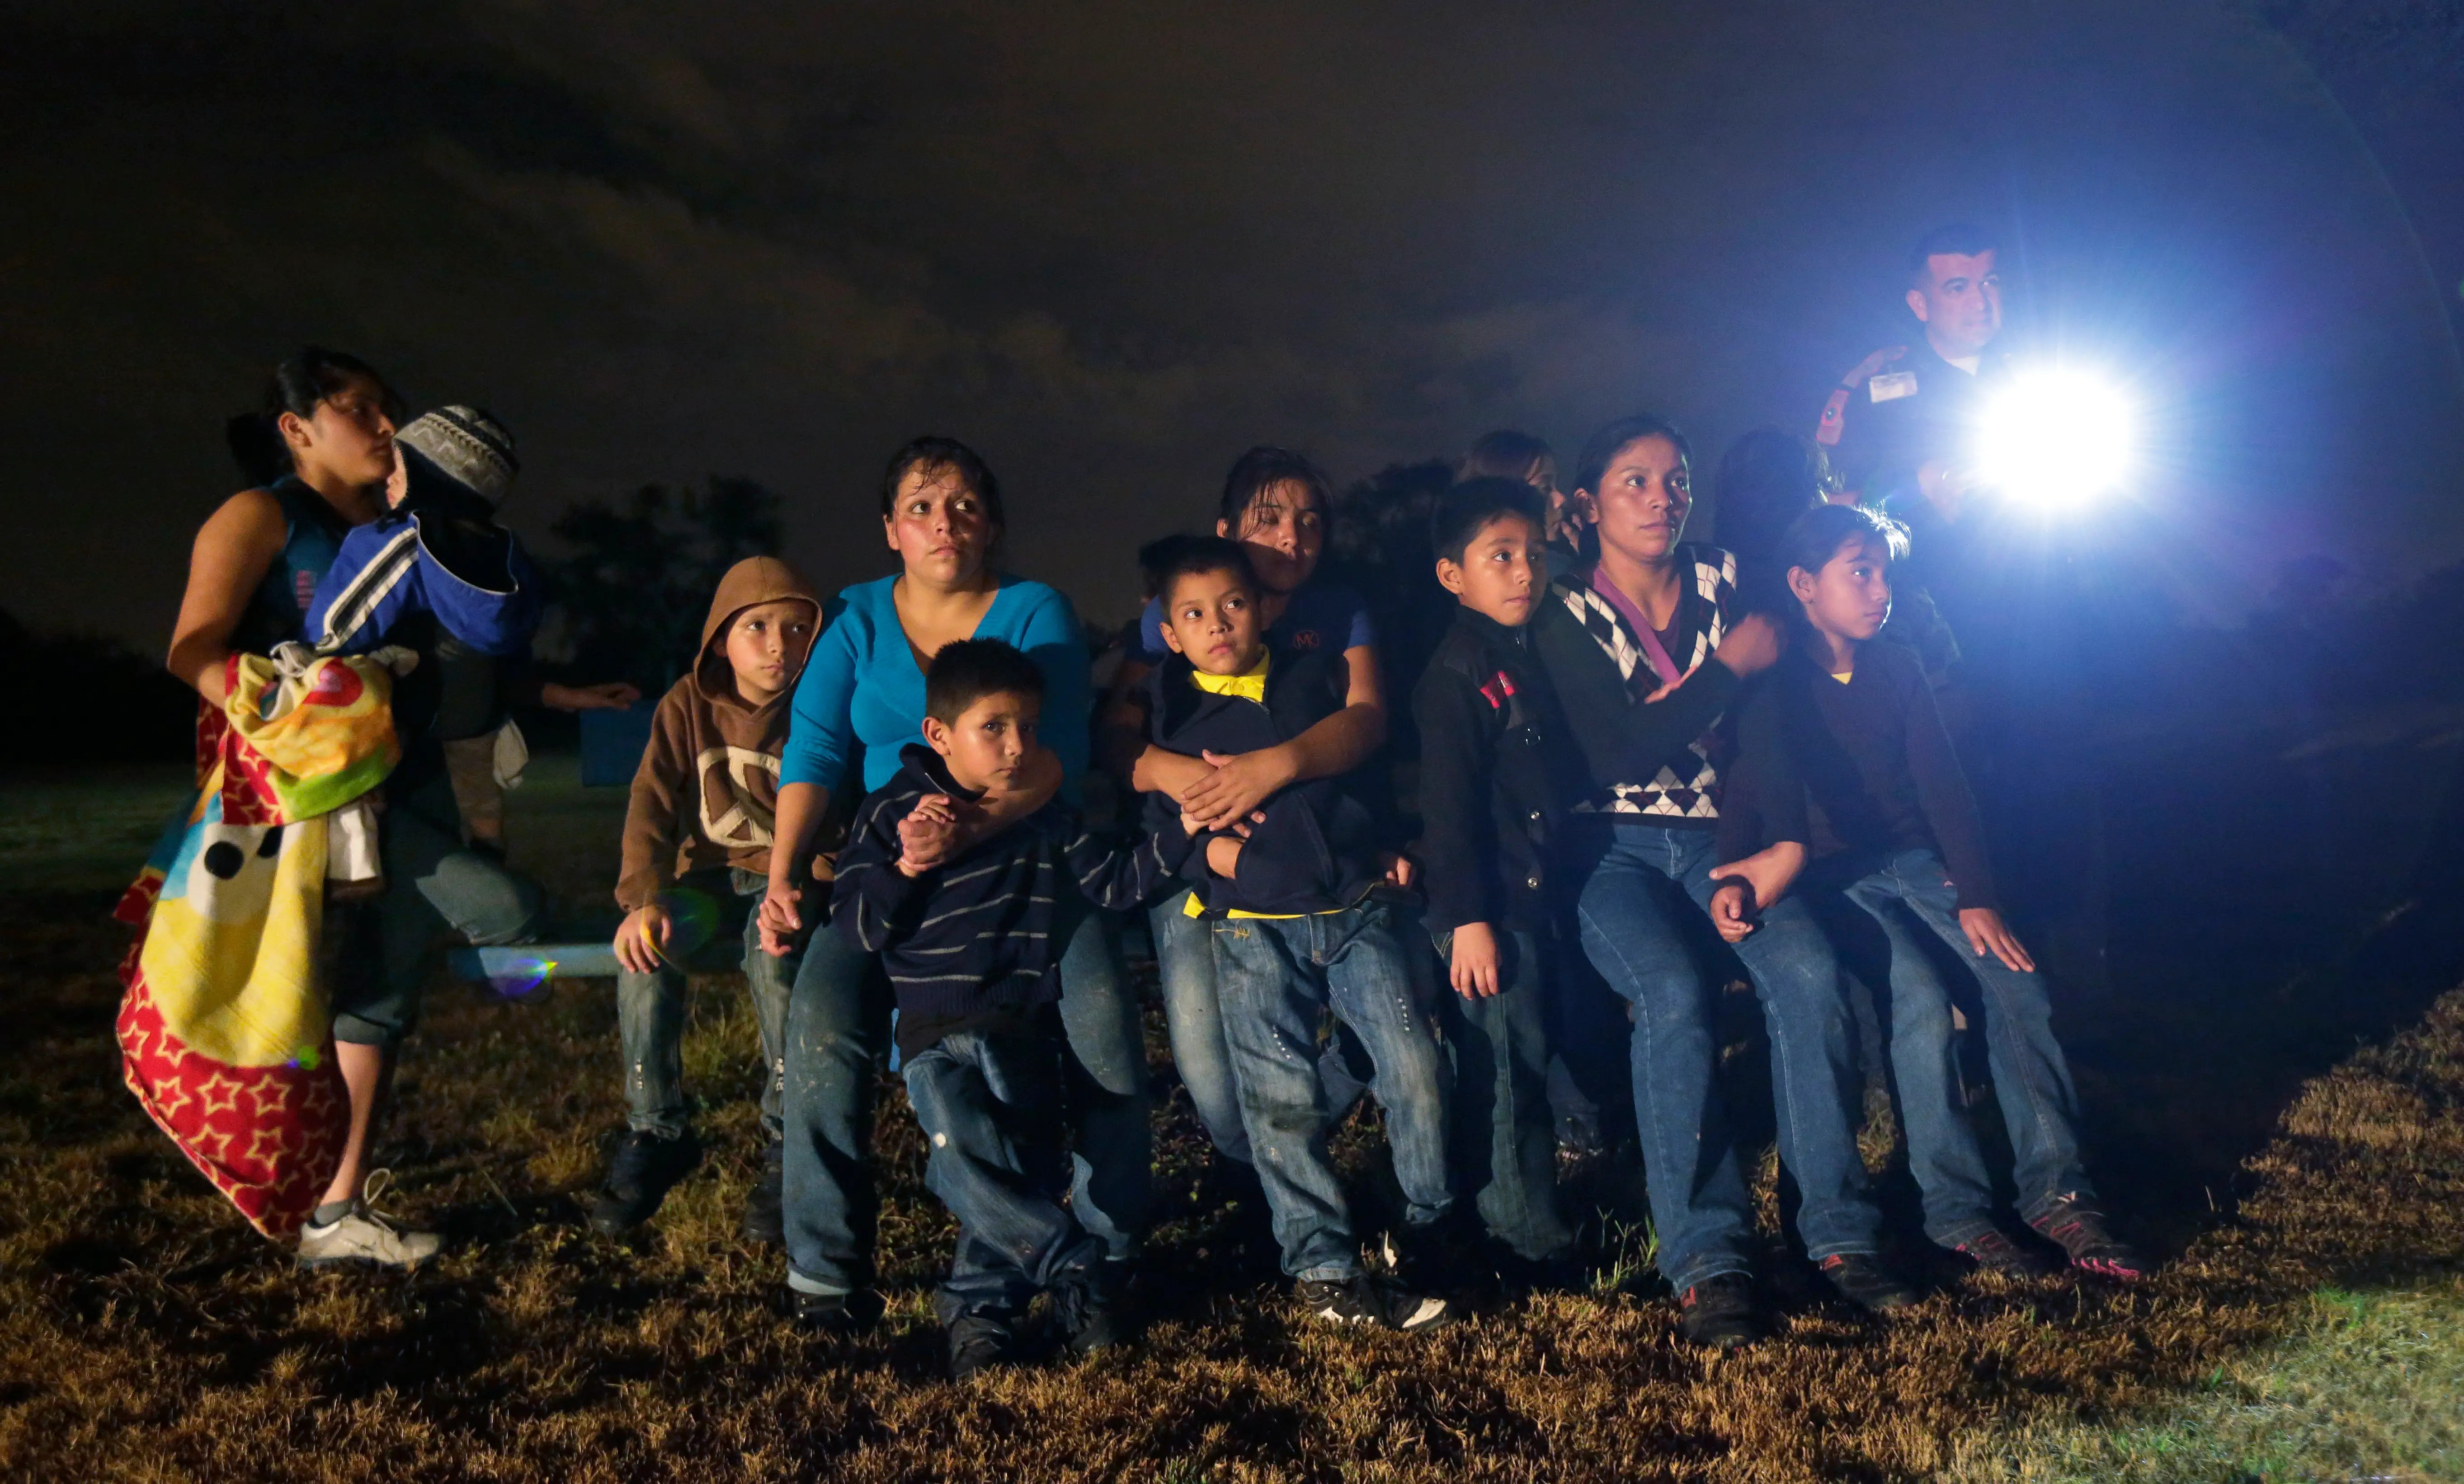 central america child migrants